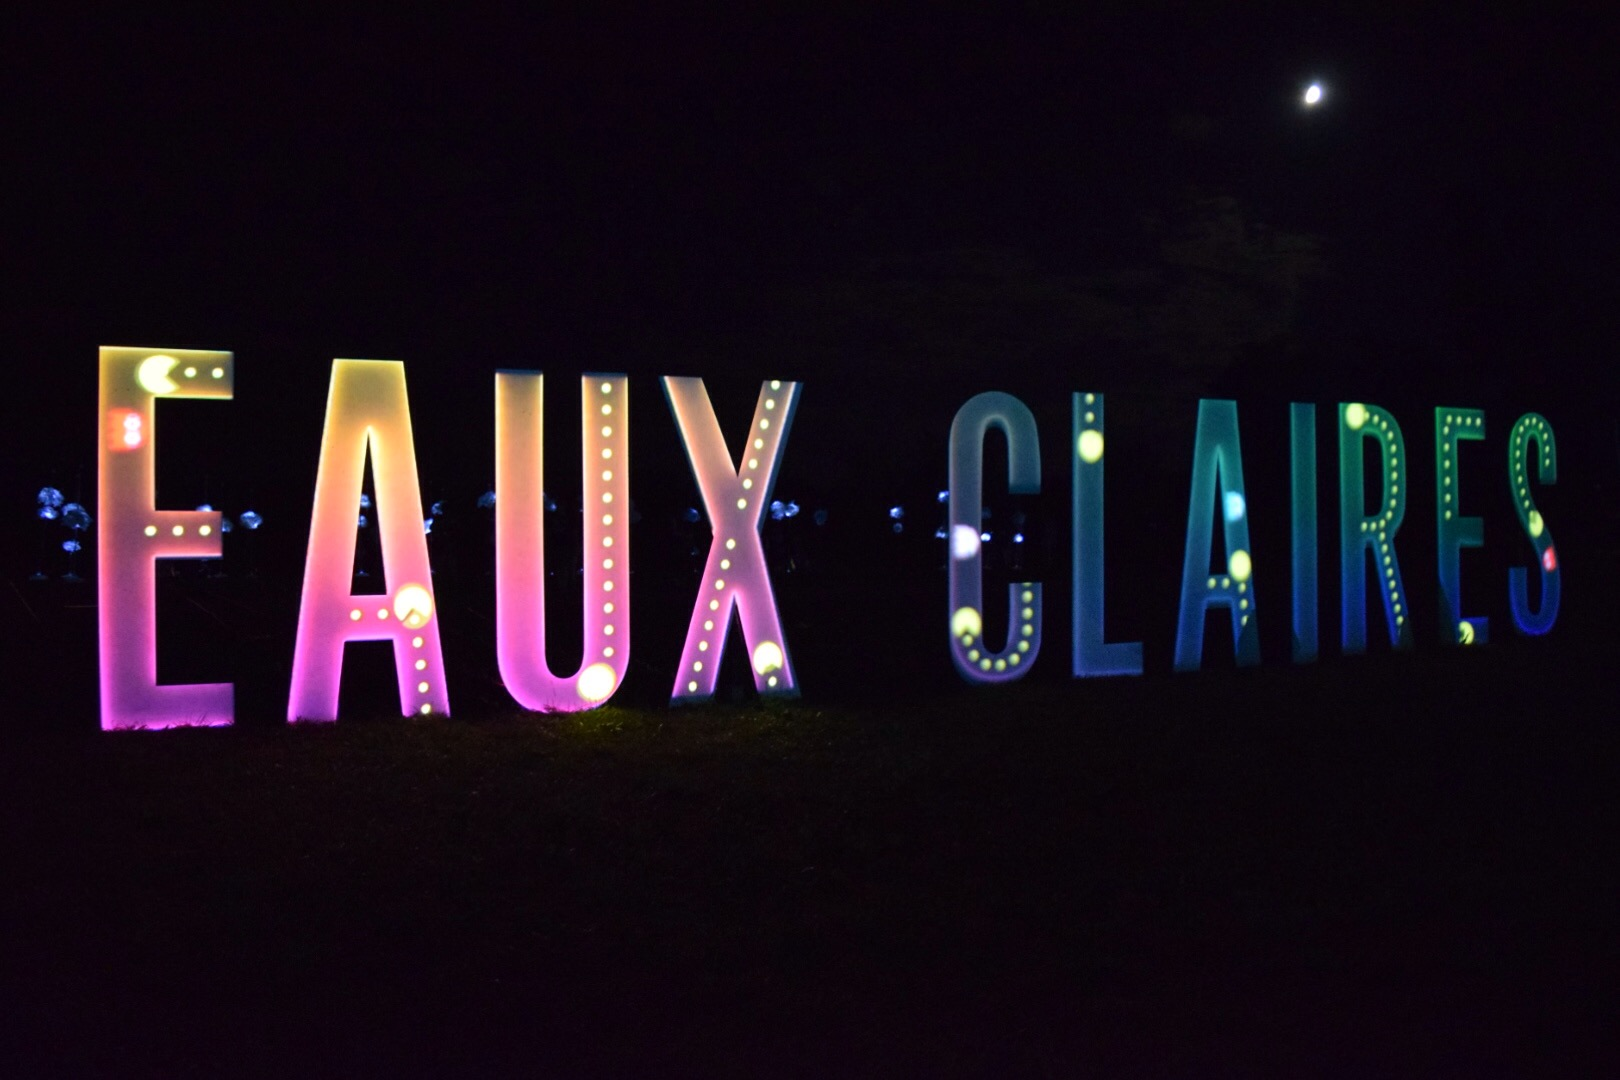 Eaux Claires 2016, photograph by Anmol Gupta